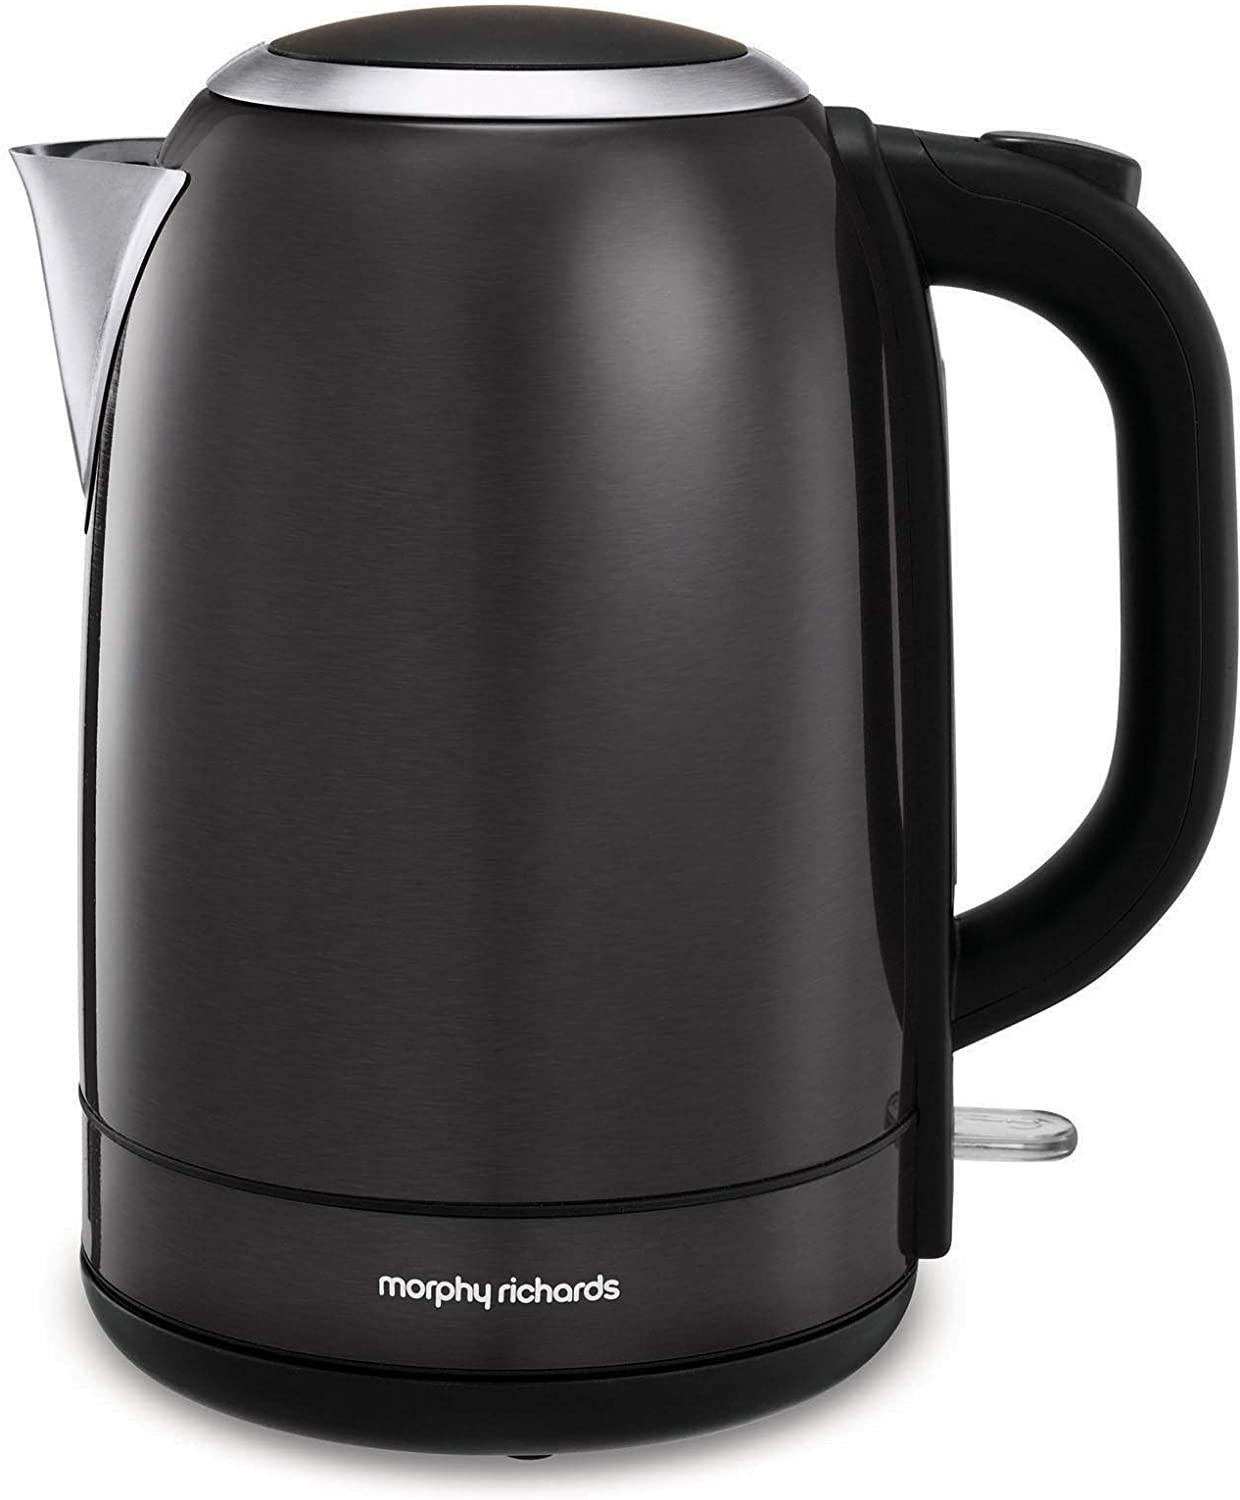 Image of Morphy Richards 102780 Equip